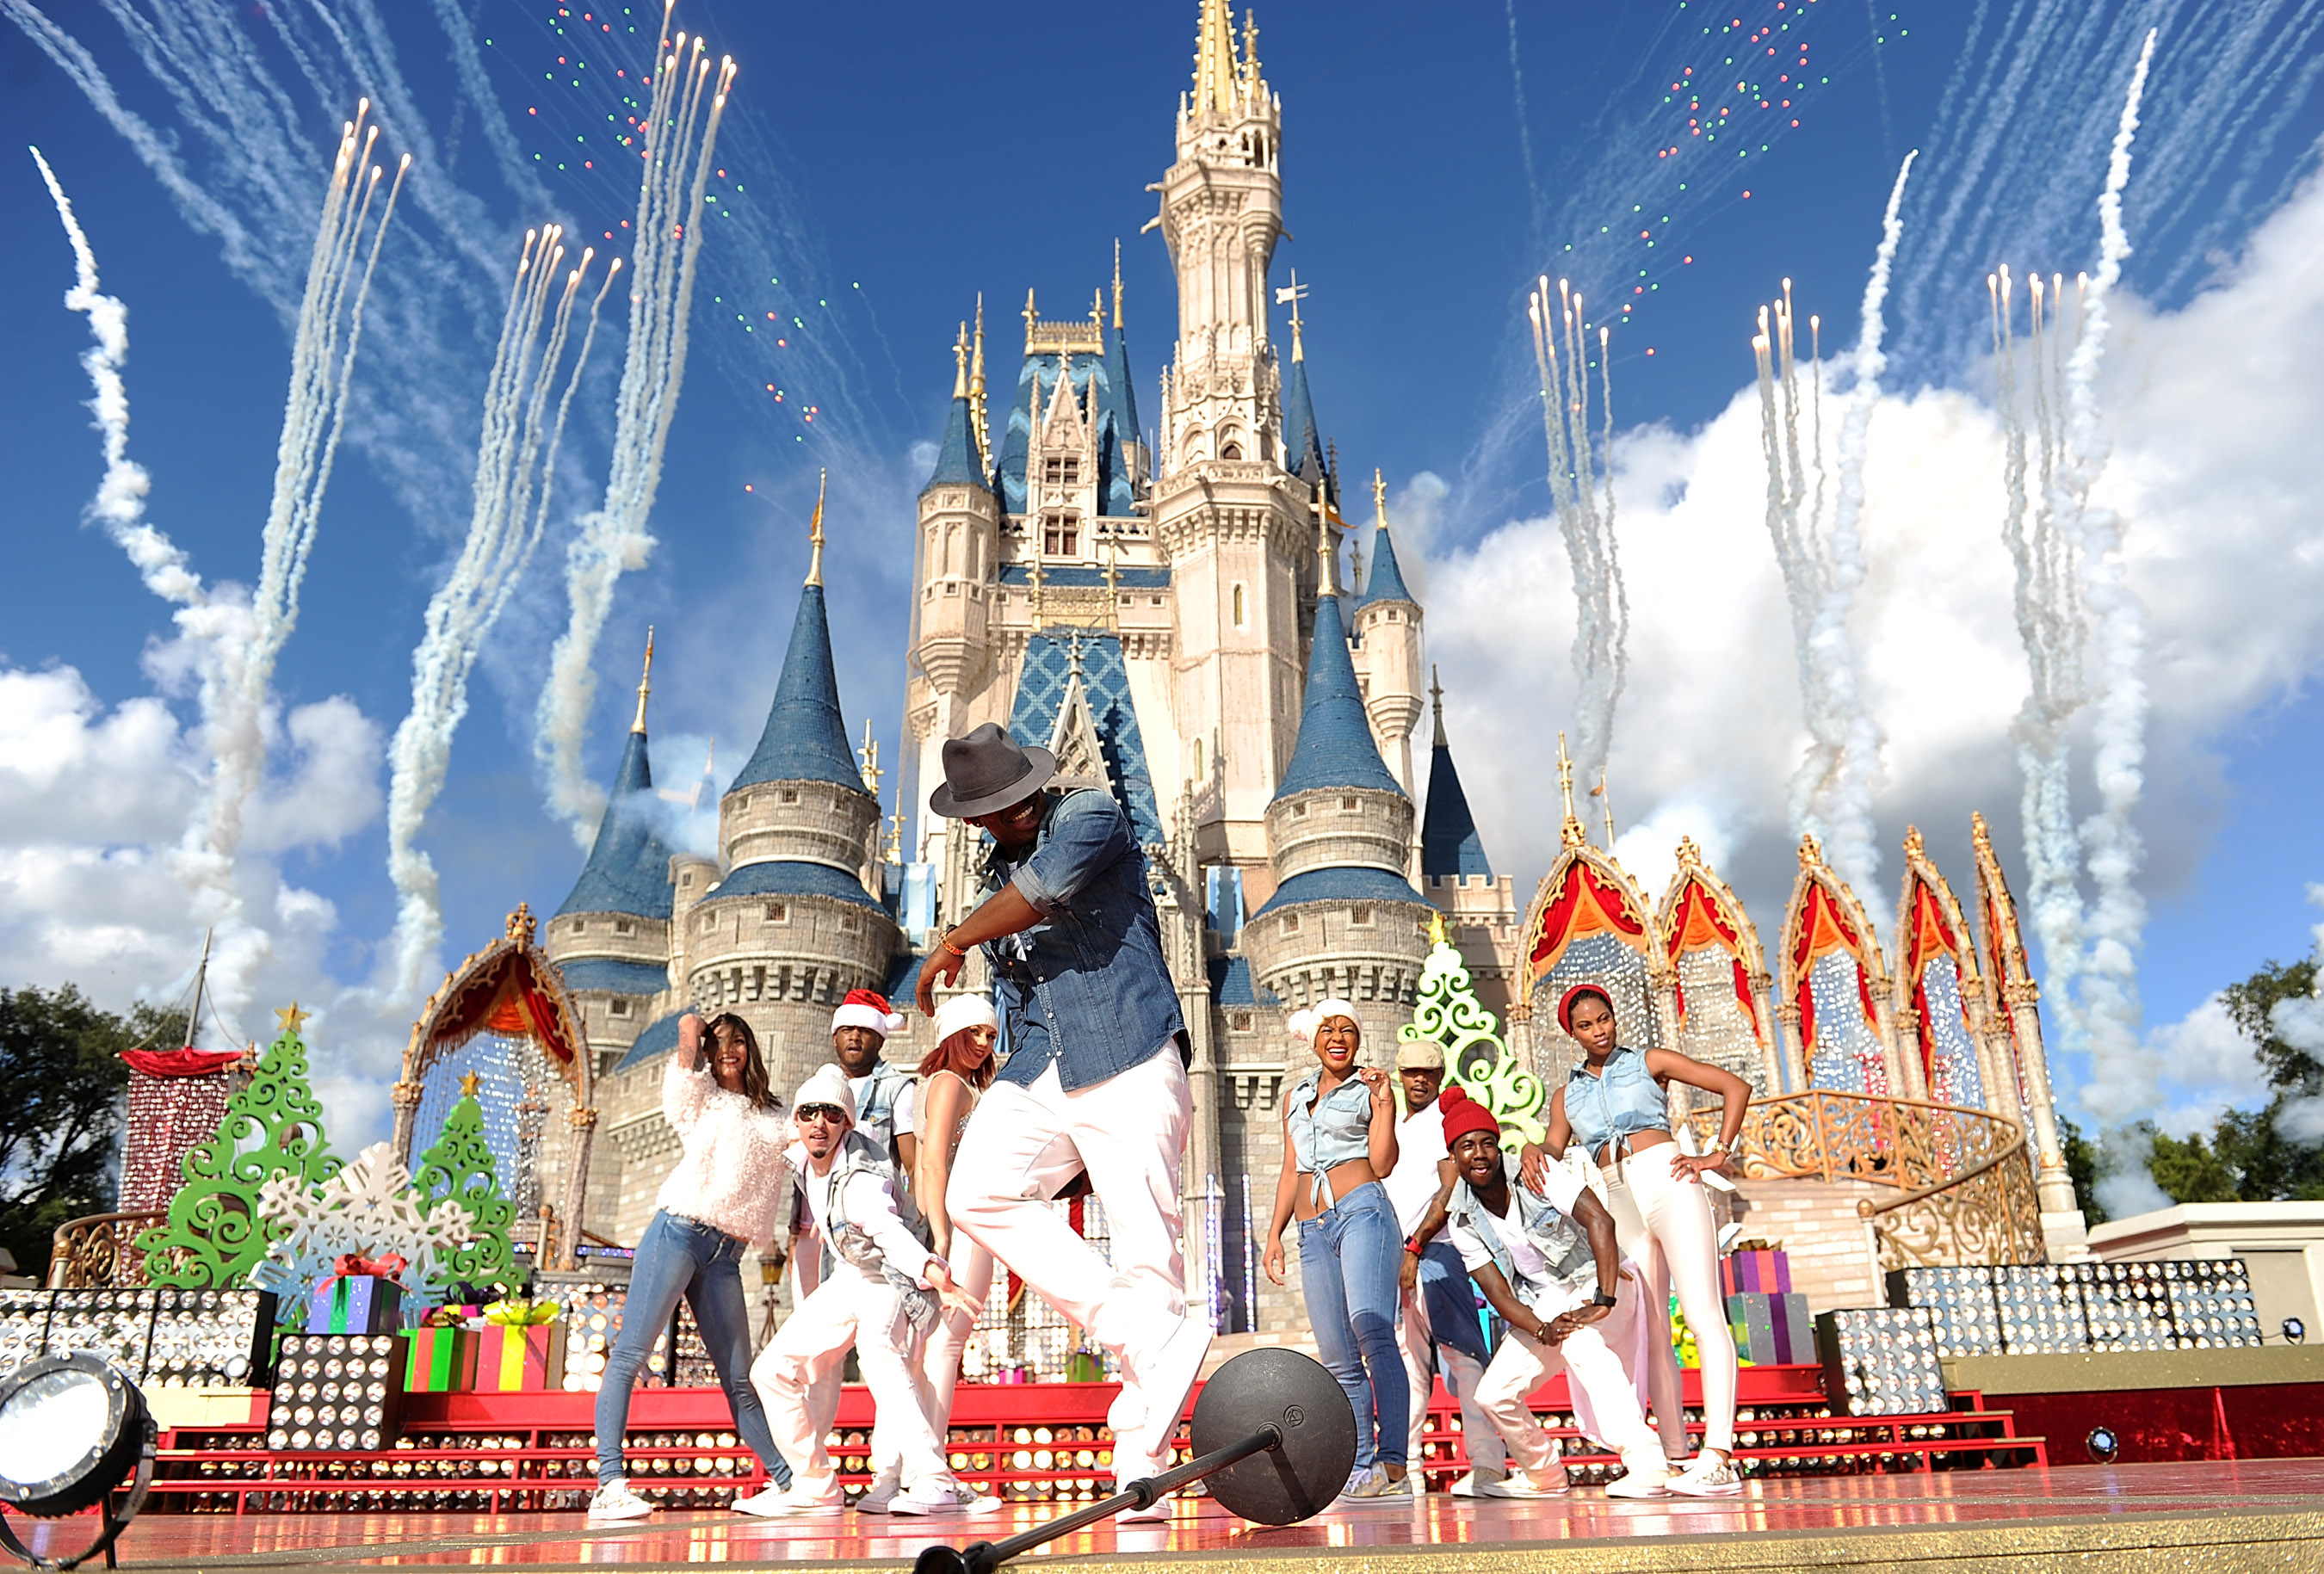 6 2013 while taping the disney parks christmas day parade tv special at the magic kingdom park at walt disney world resort in lake buena